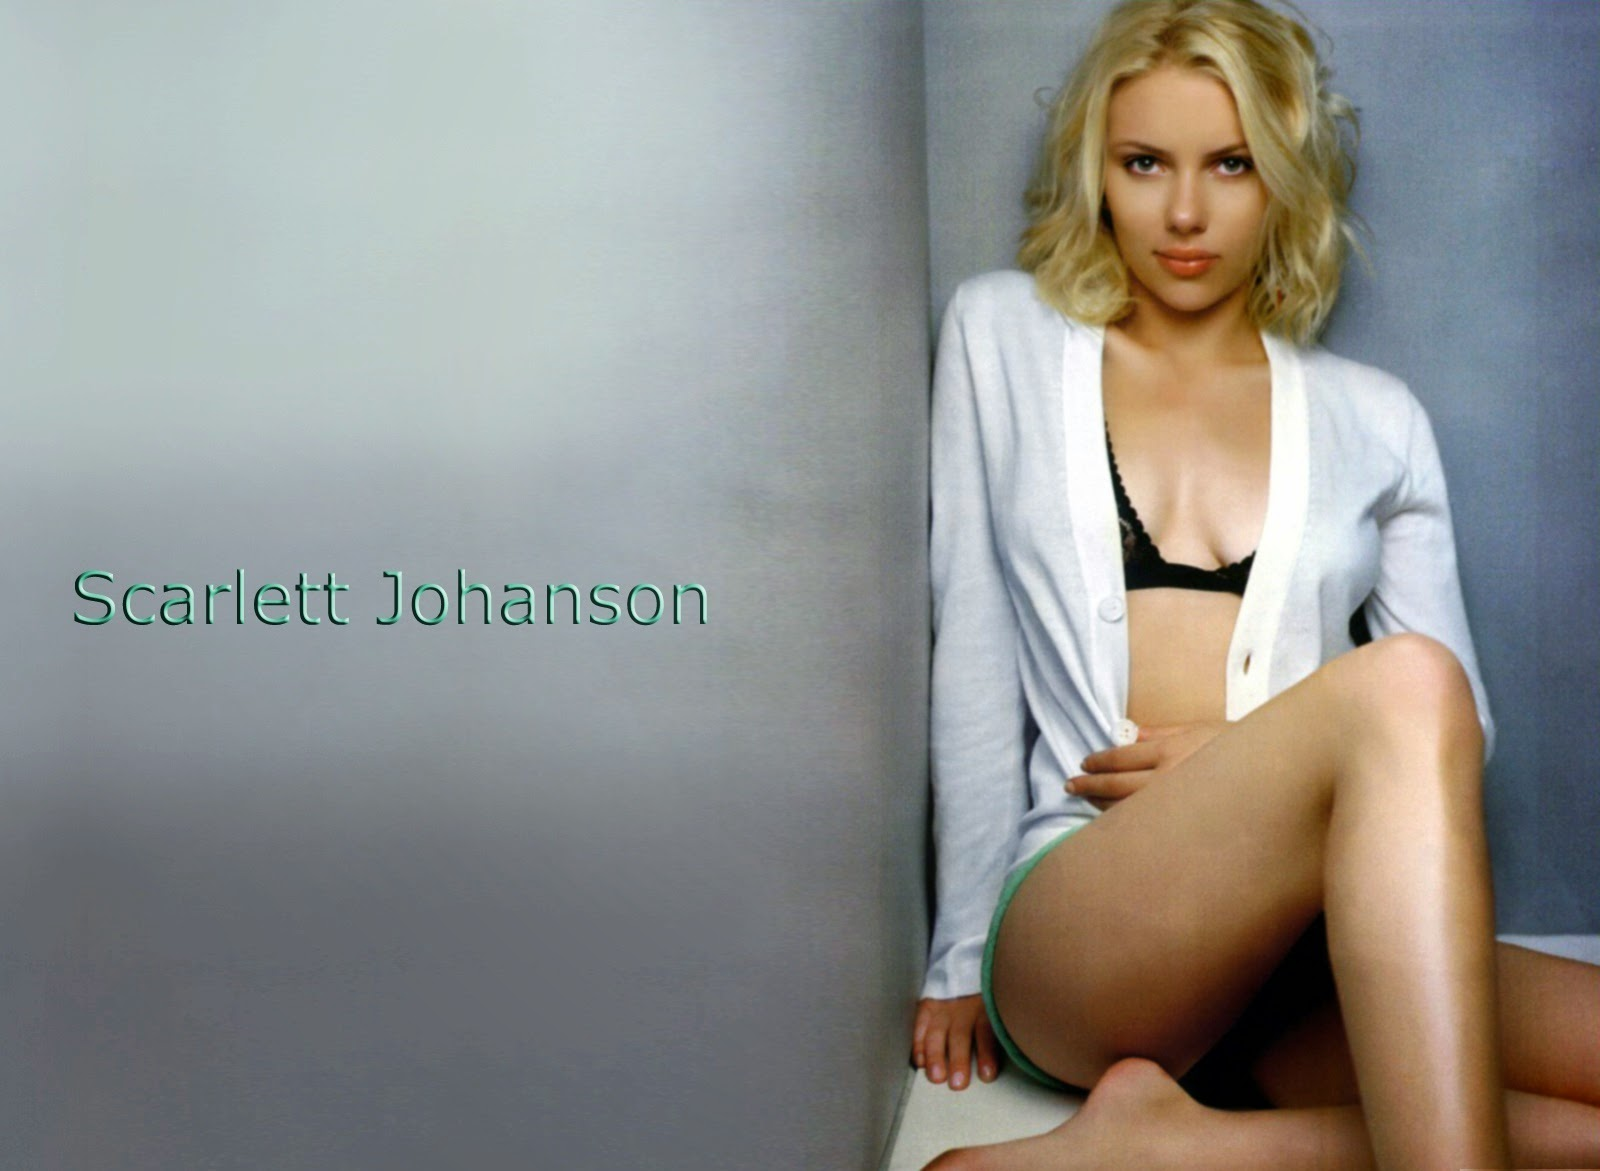 ... Johansson Makeup See Photos Of The Actress | Male Models Picture